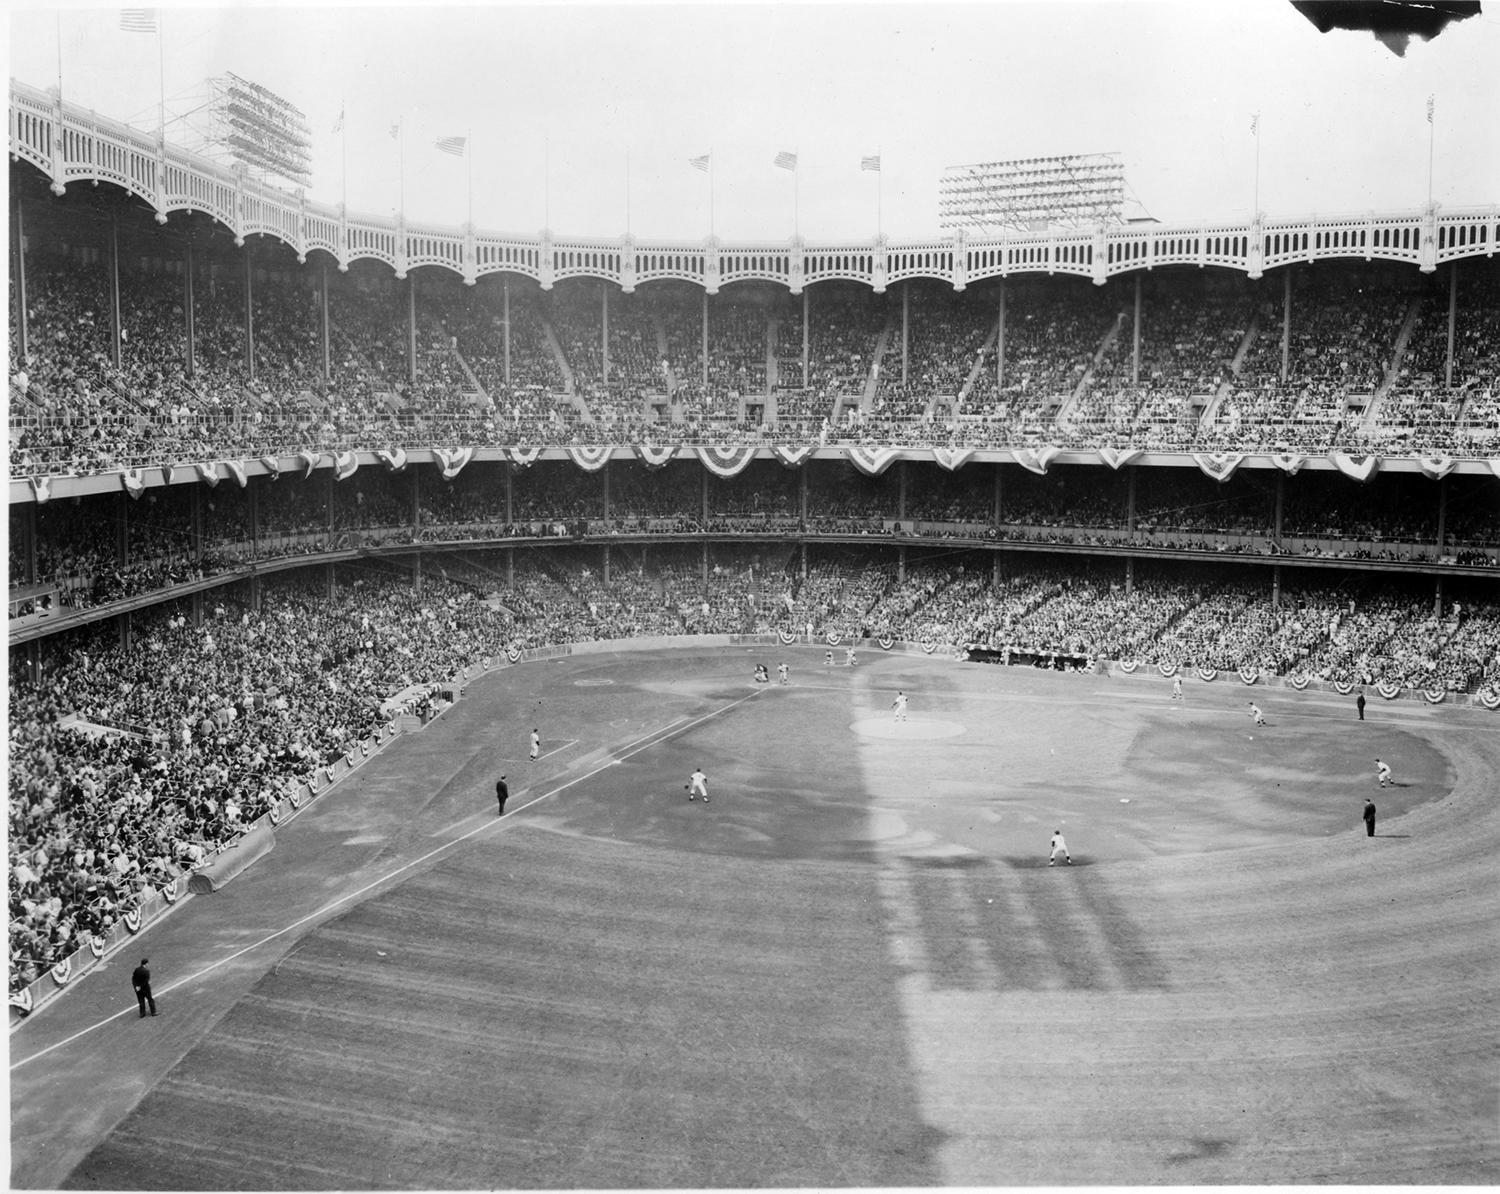 Constructed in 1923, Yankee Stadium would host the Yankees through the 2008 season before the team moved into a new building across the street in the Bronx. (National Baseball Hall of Fame and Museum)